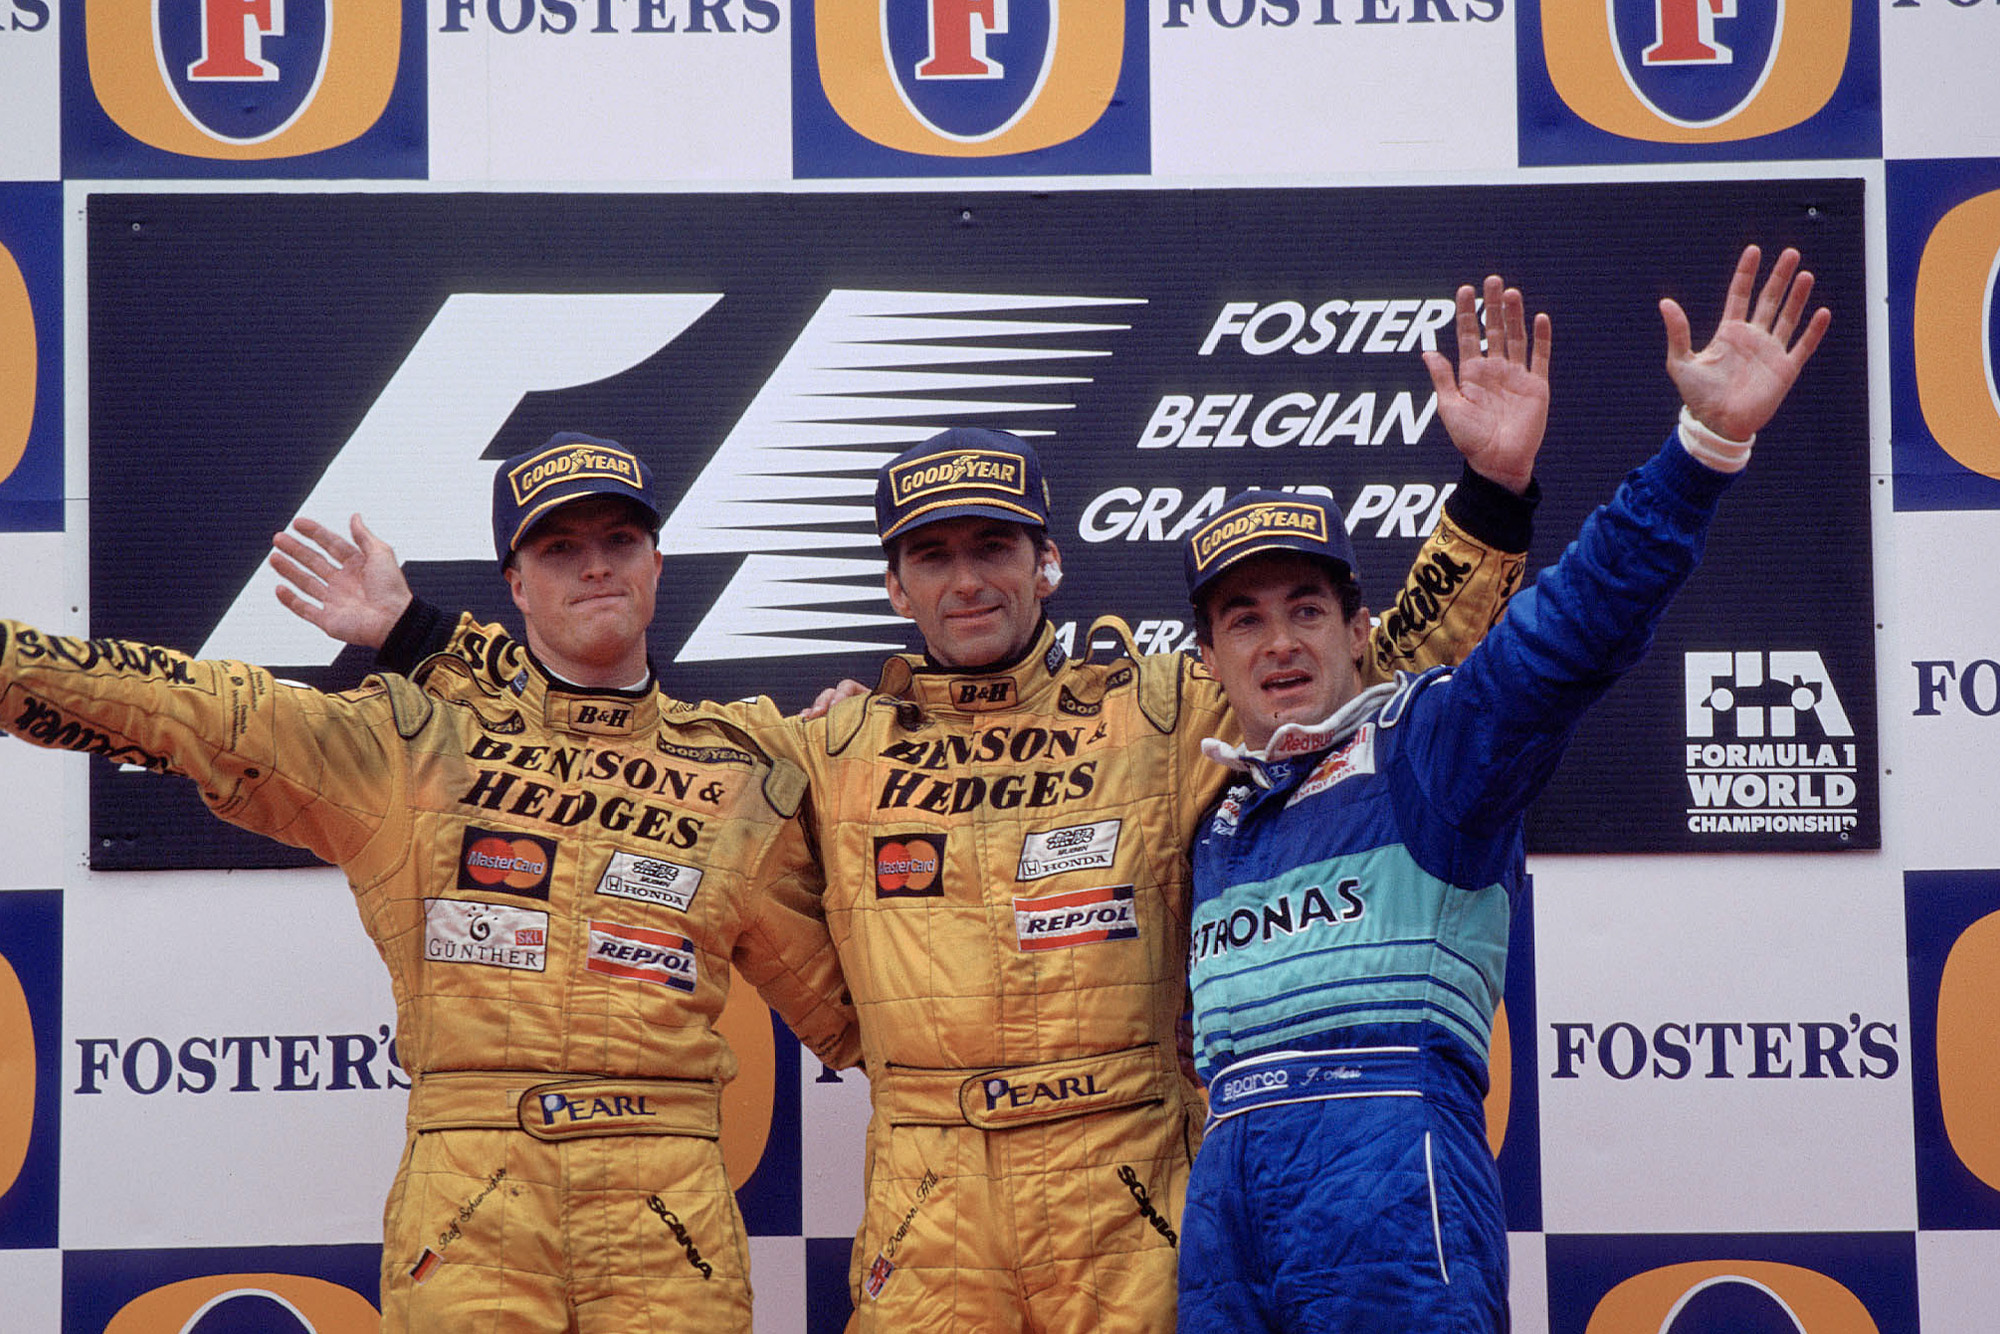 Damon Hill at the top of the podium with Ralf Schumacher and Jean Alesi after the 1998 Belgian Grand Prix